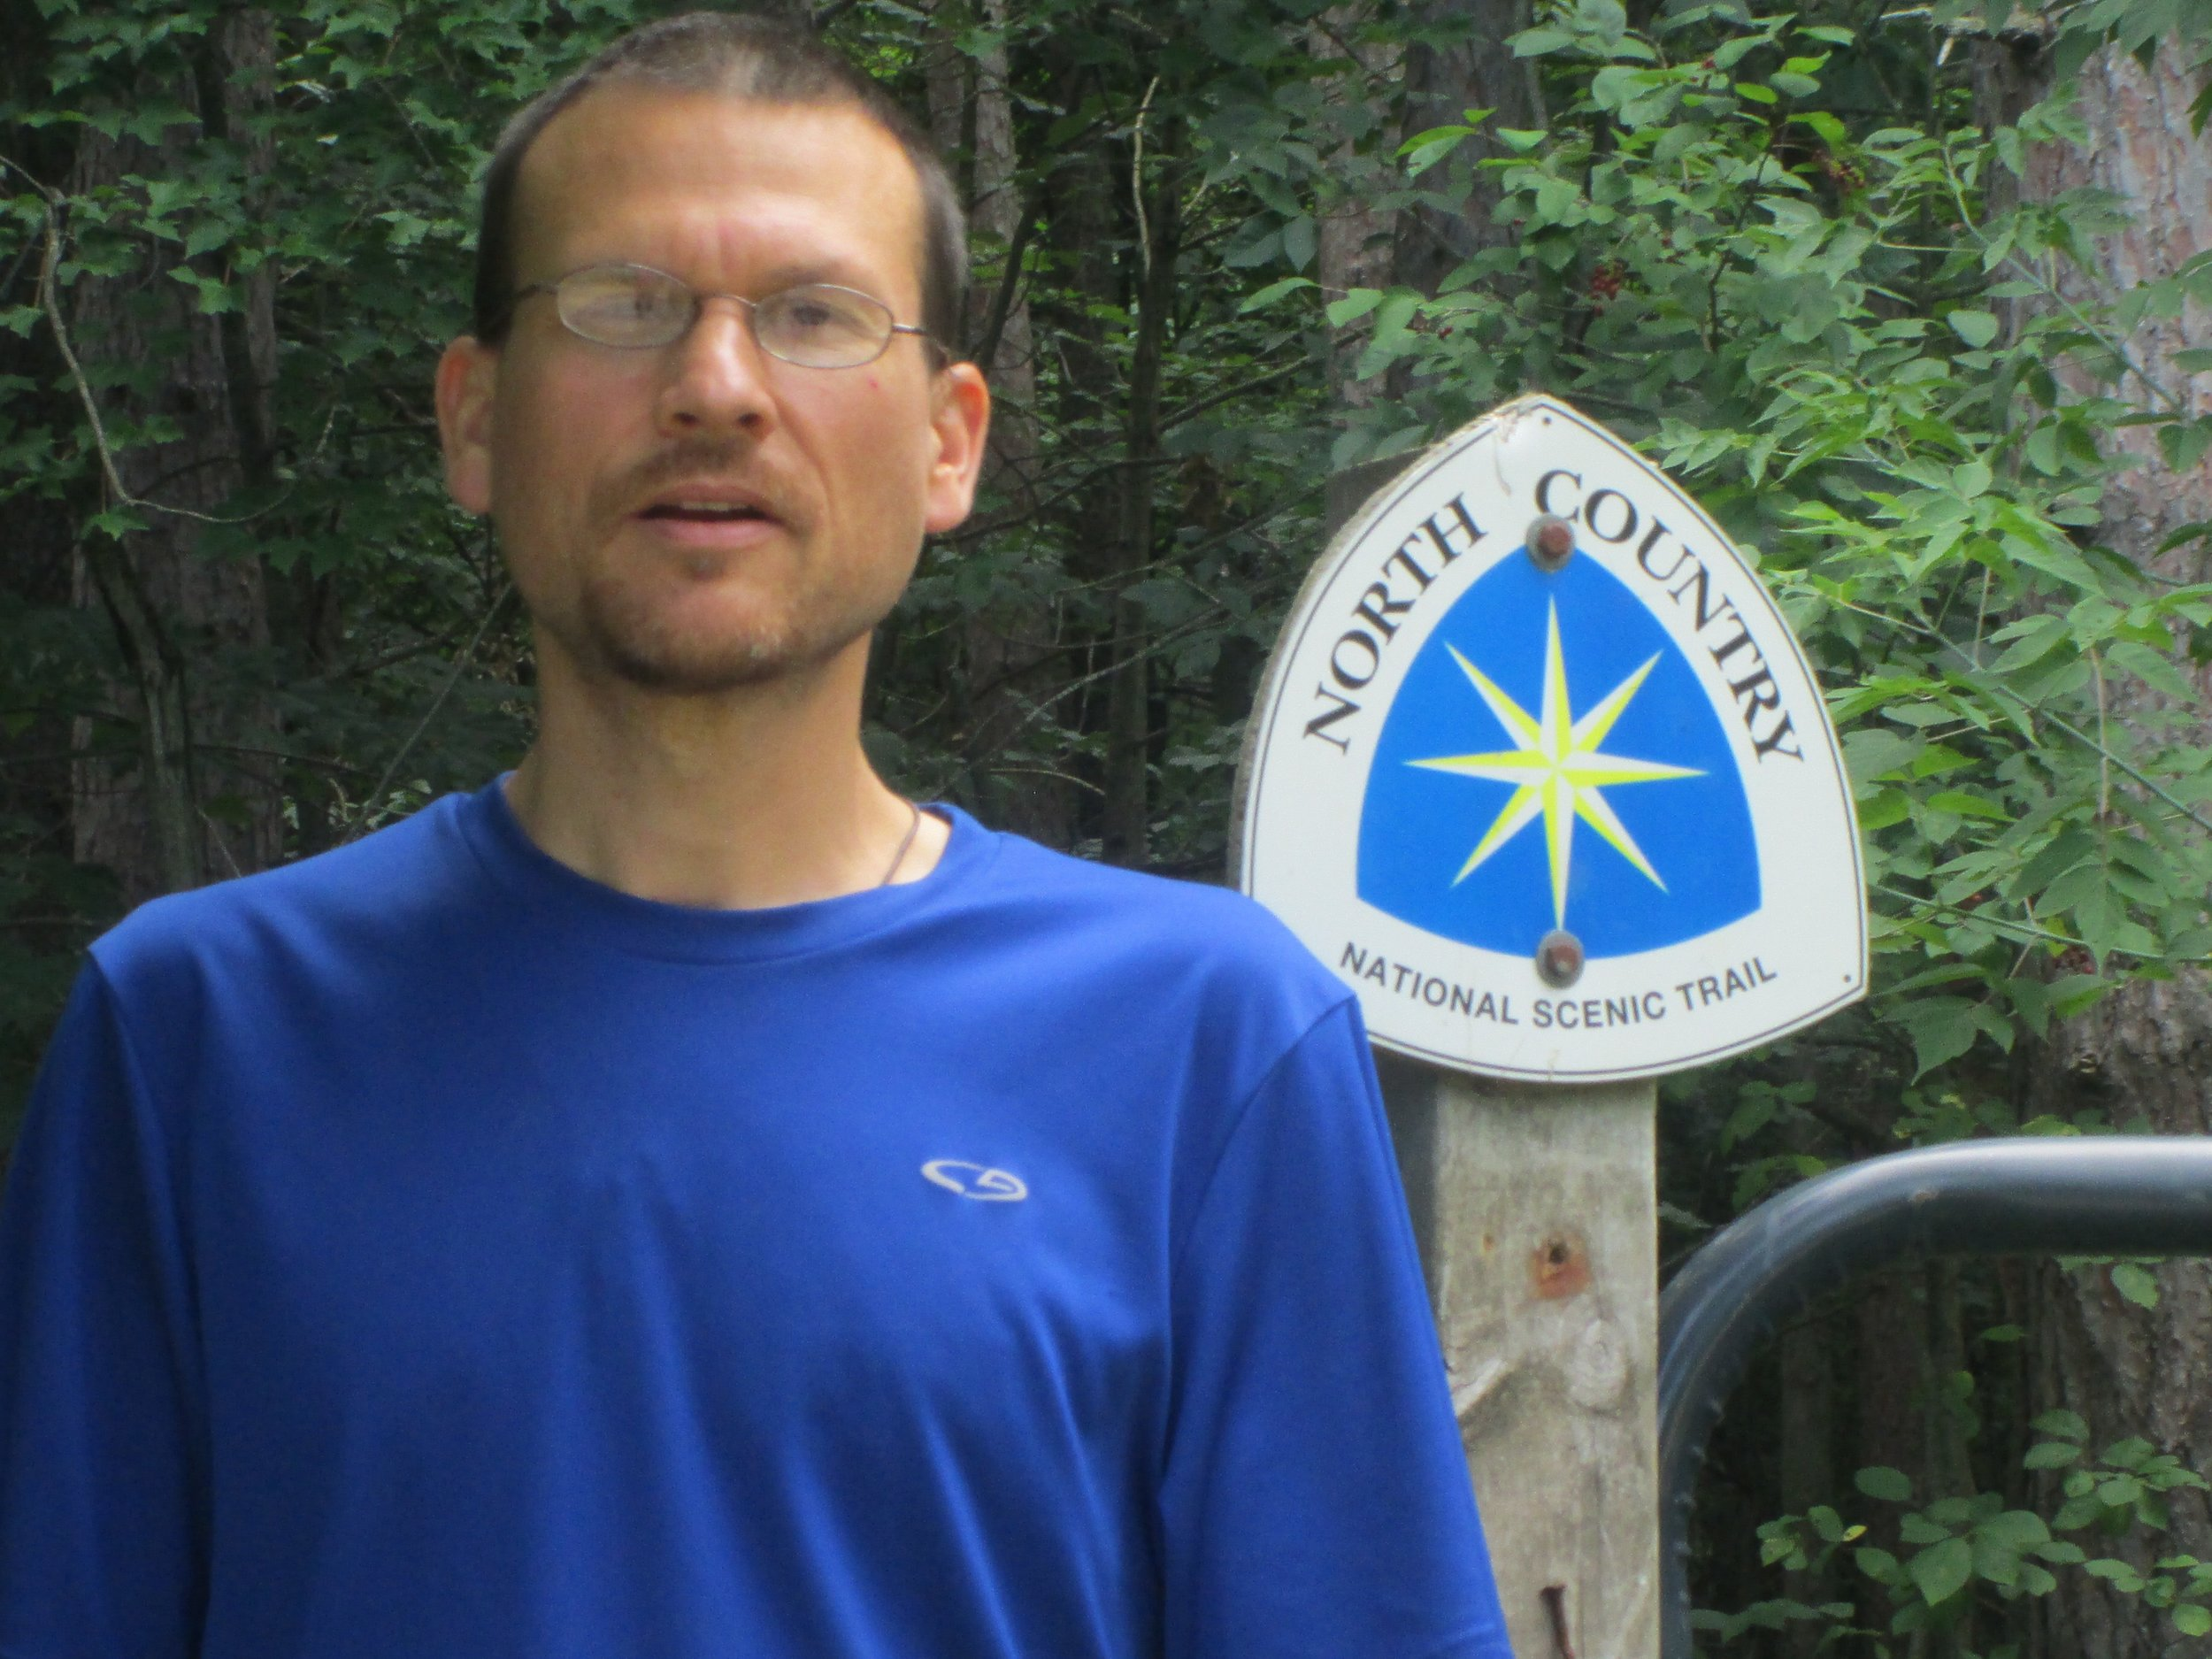 Hiking along the North country trail in the upper peninsula